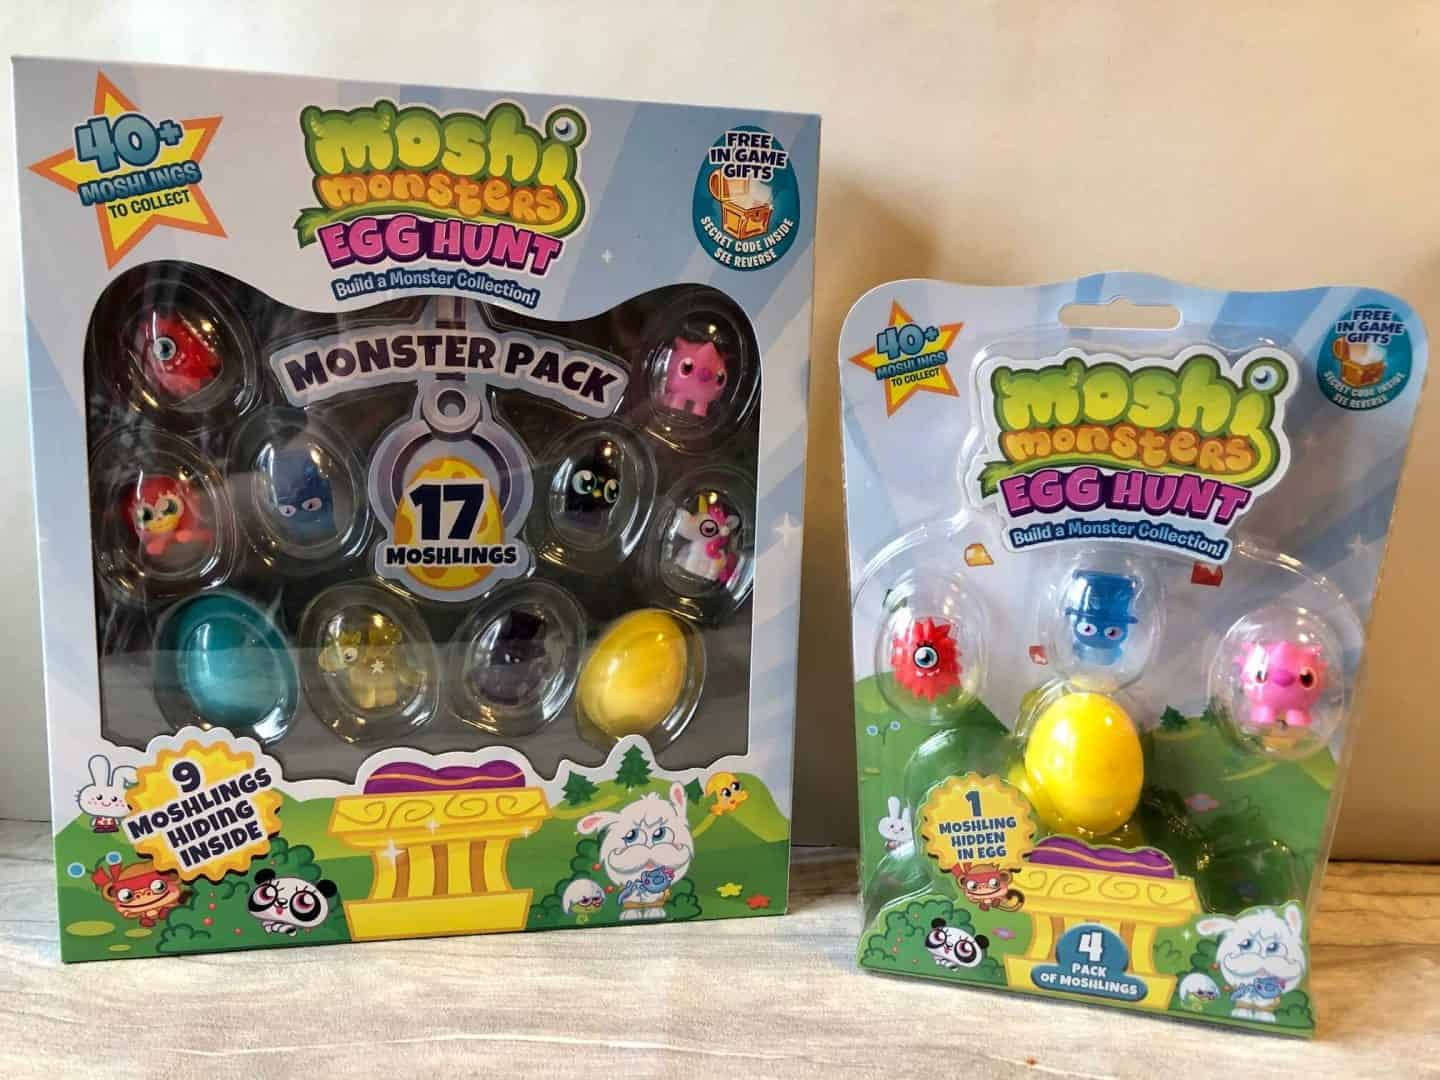 Moshi Monsters Egg Hunt 4 pack and monster pack